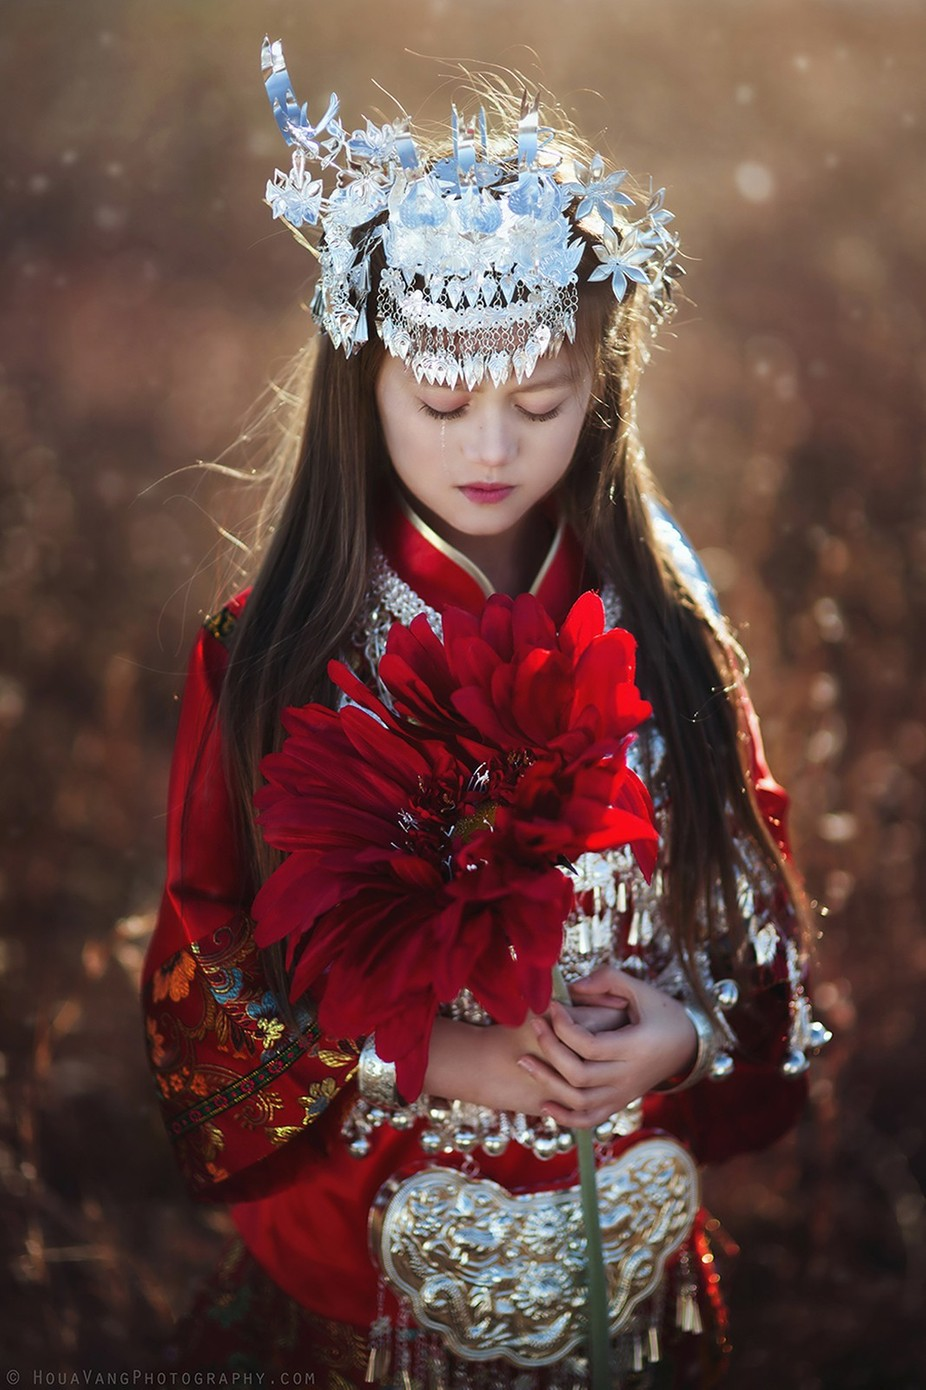 Young flower by HouavangPhotography - Kids With Props Photo Contest